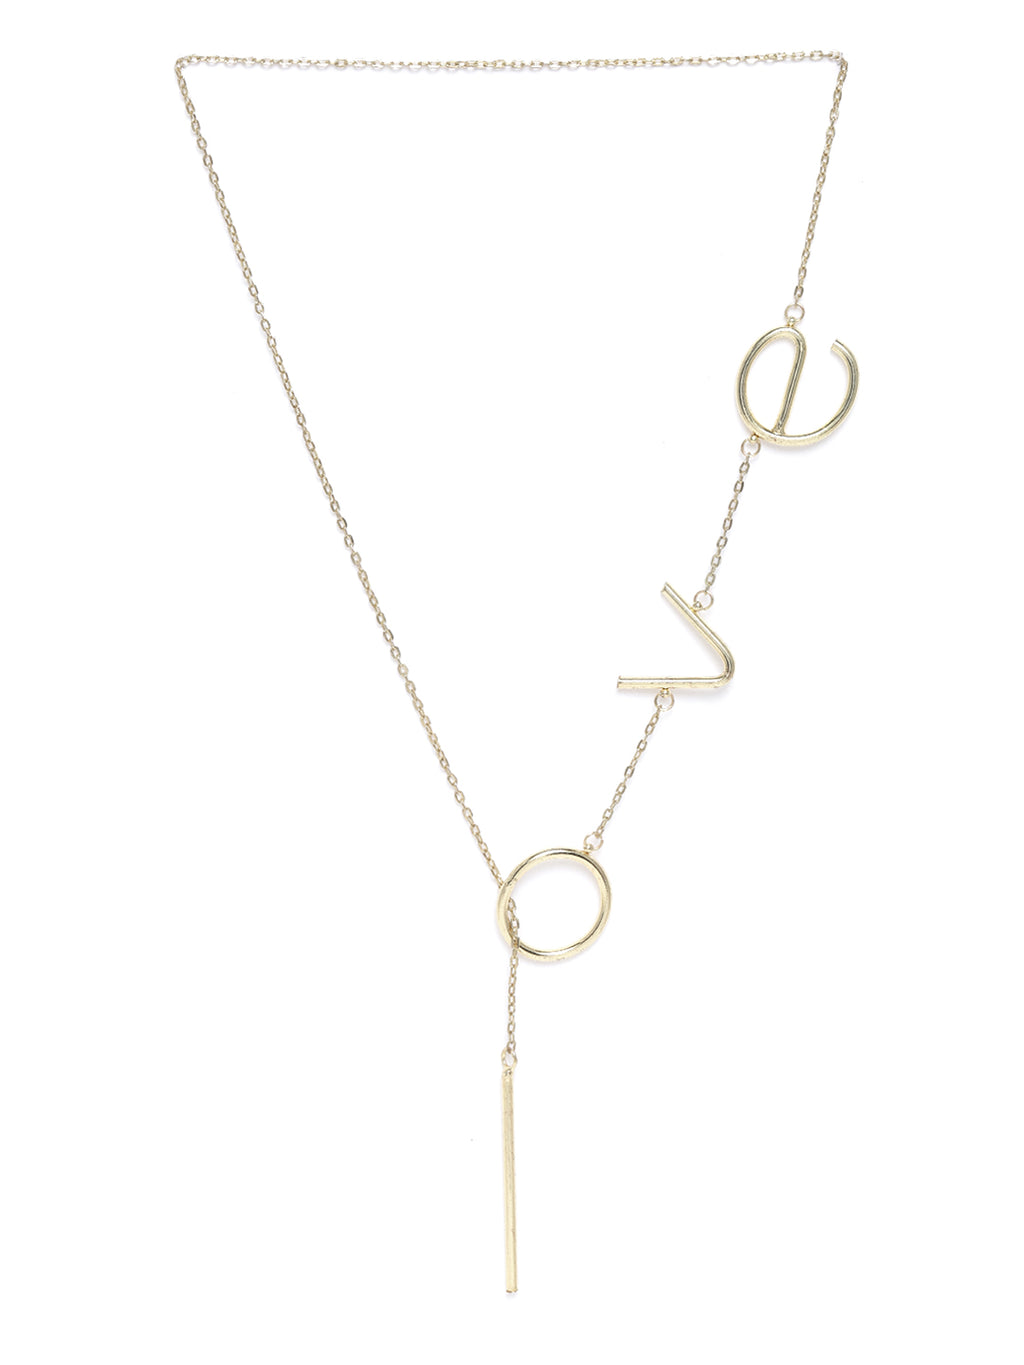 Blueberry gold plated love lariyat chain necklace